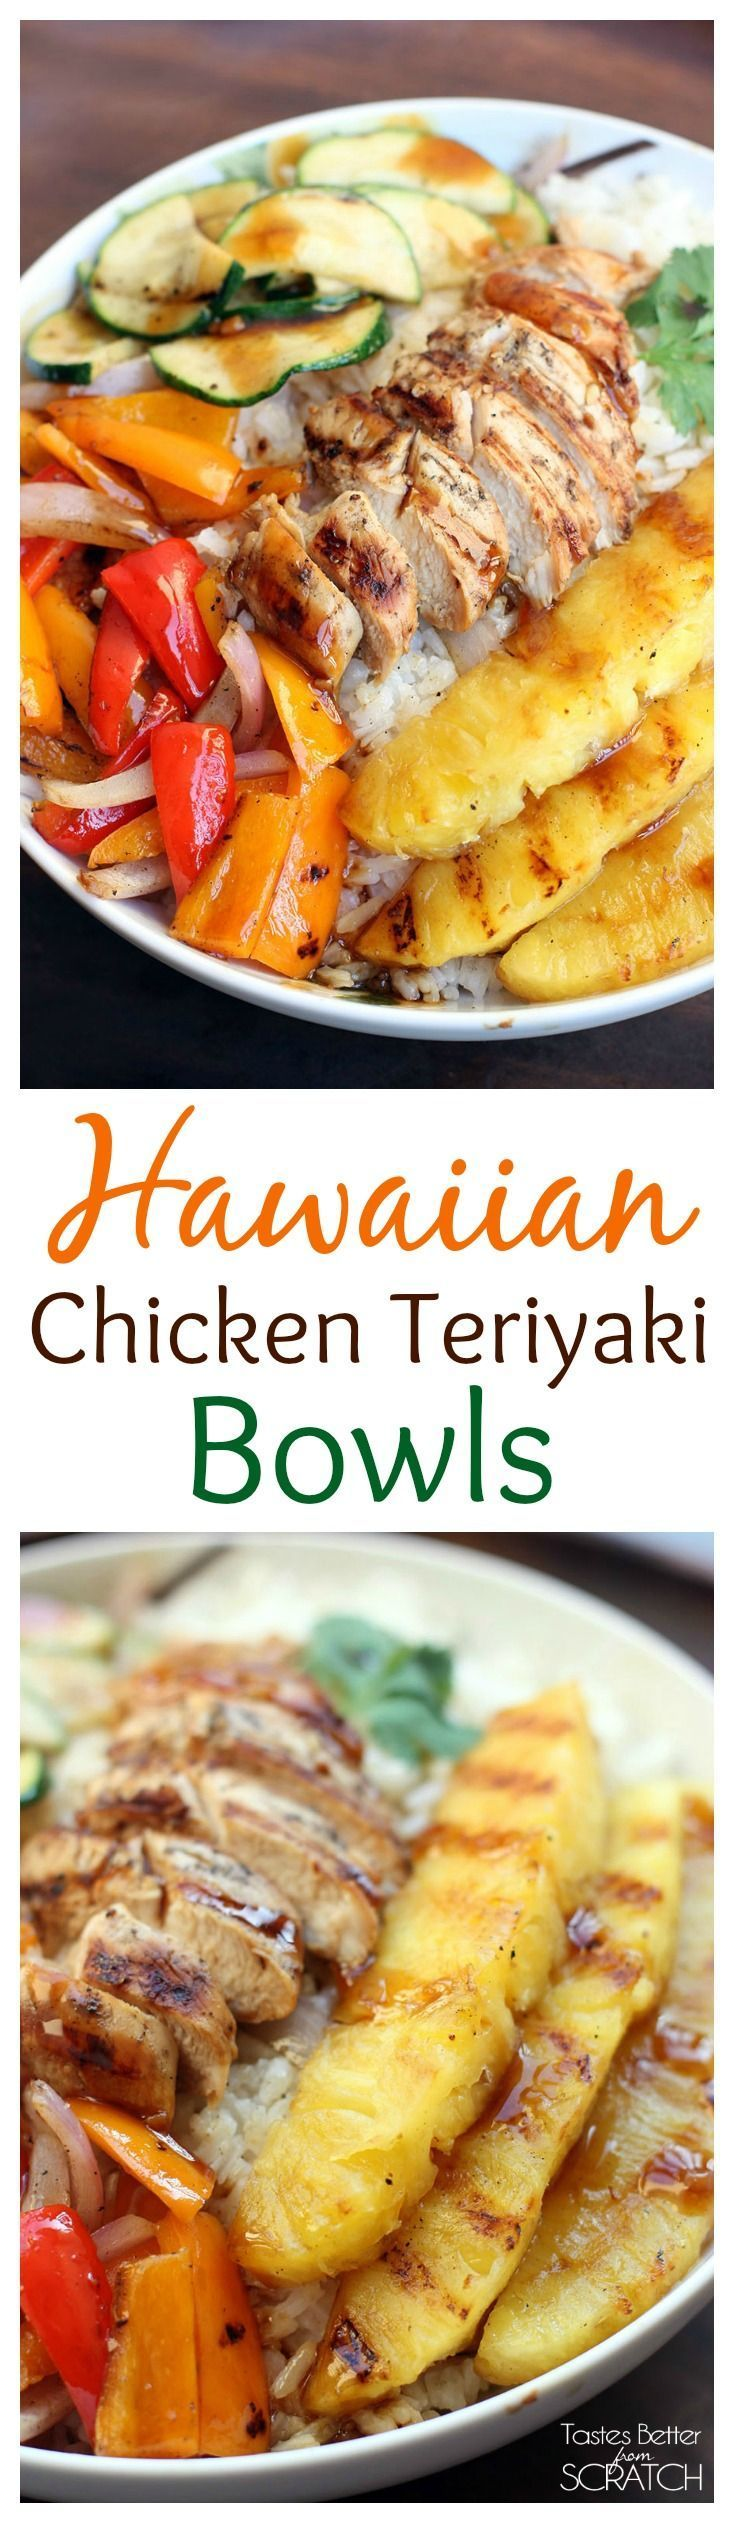 Grilled Hawaiian Chicken Teriyaki Bowls with coconut rice and grilled pineapple on TastesBetterFromScratch.com